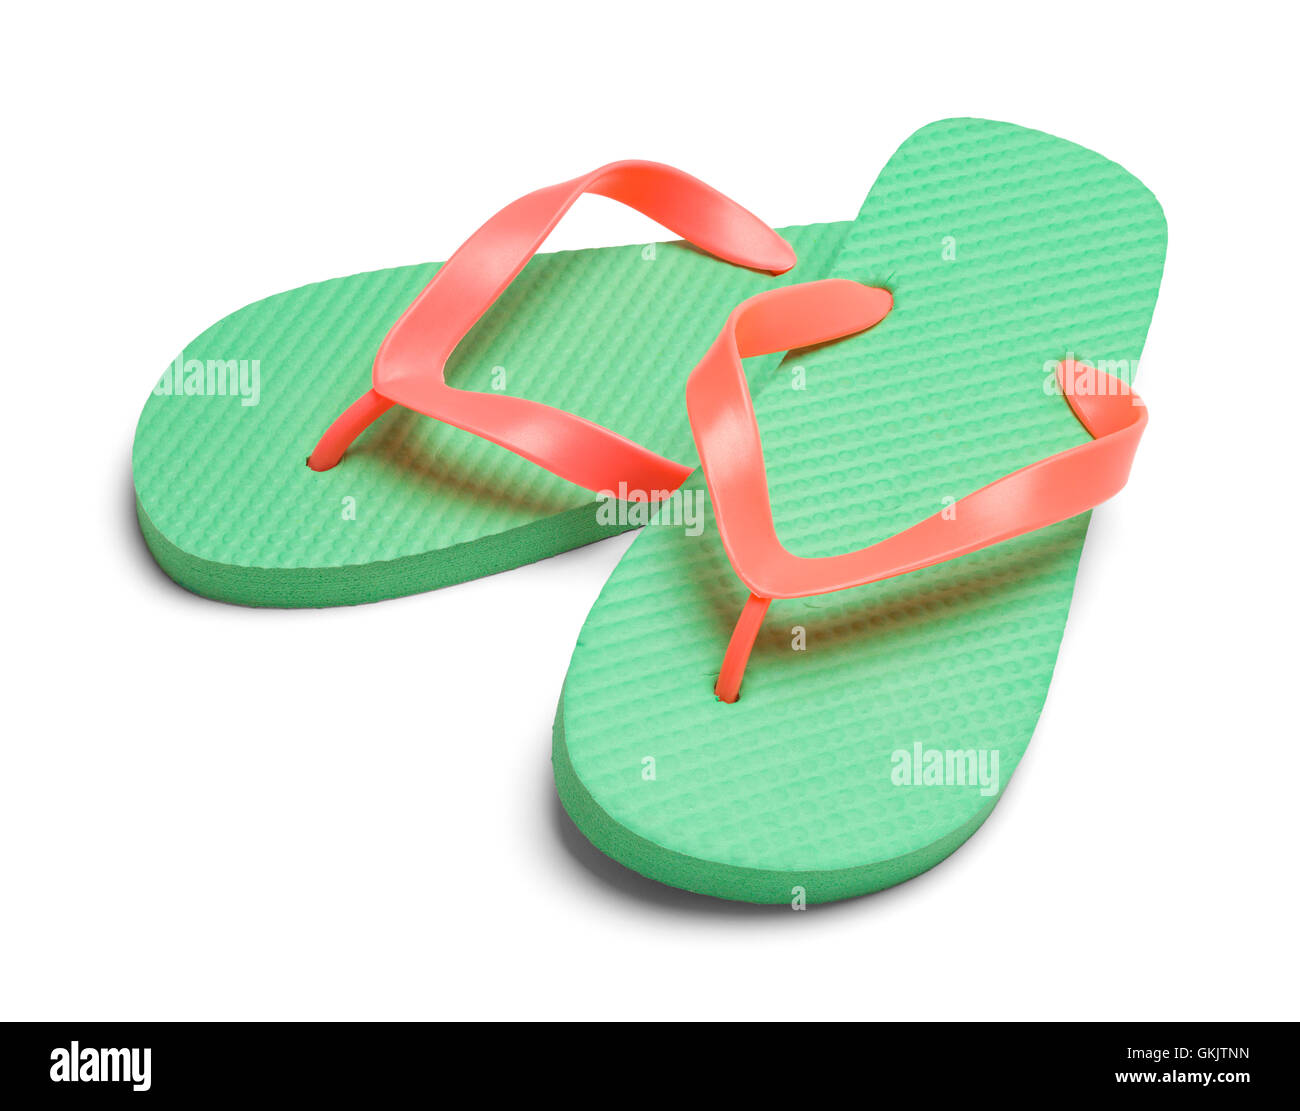 Pair of Light Green Flip Flops Isolated on White Background. - Stock Image